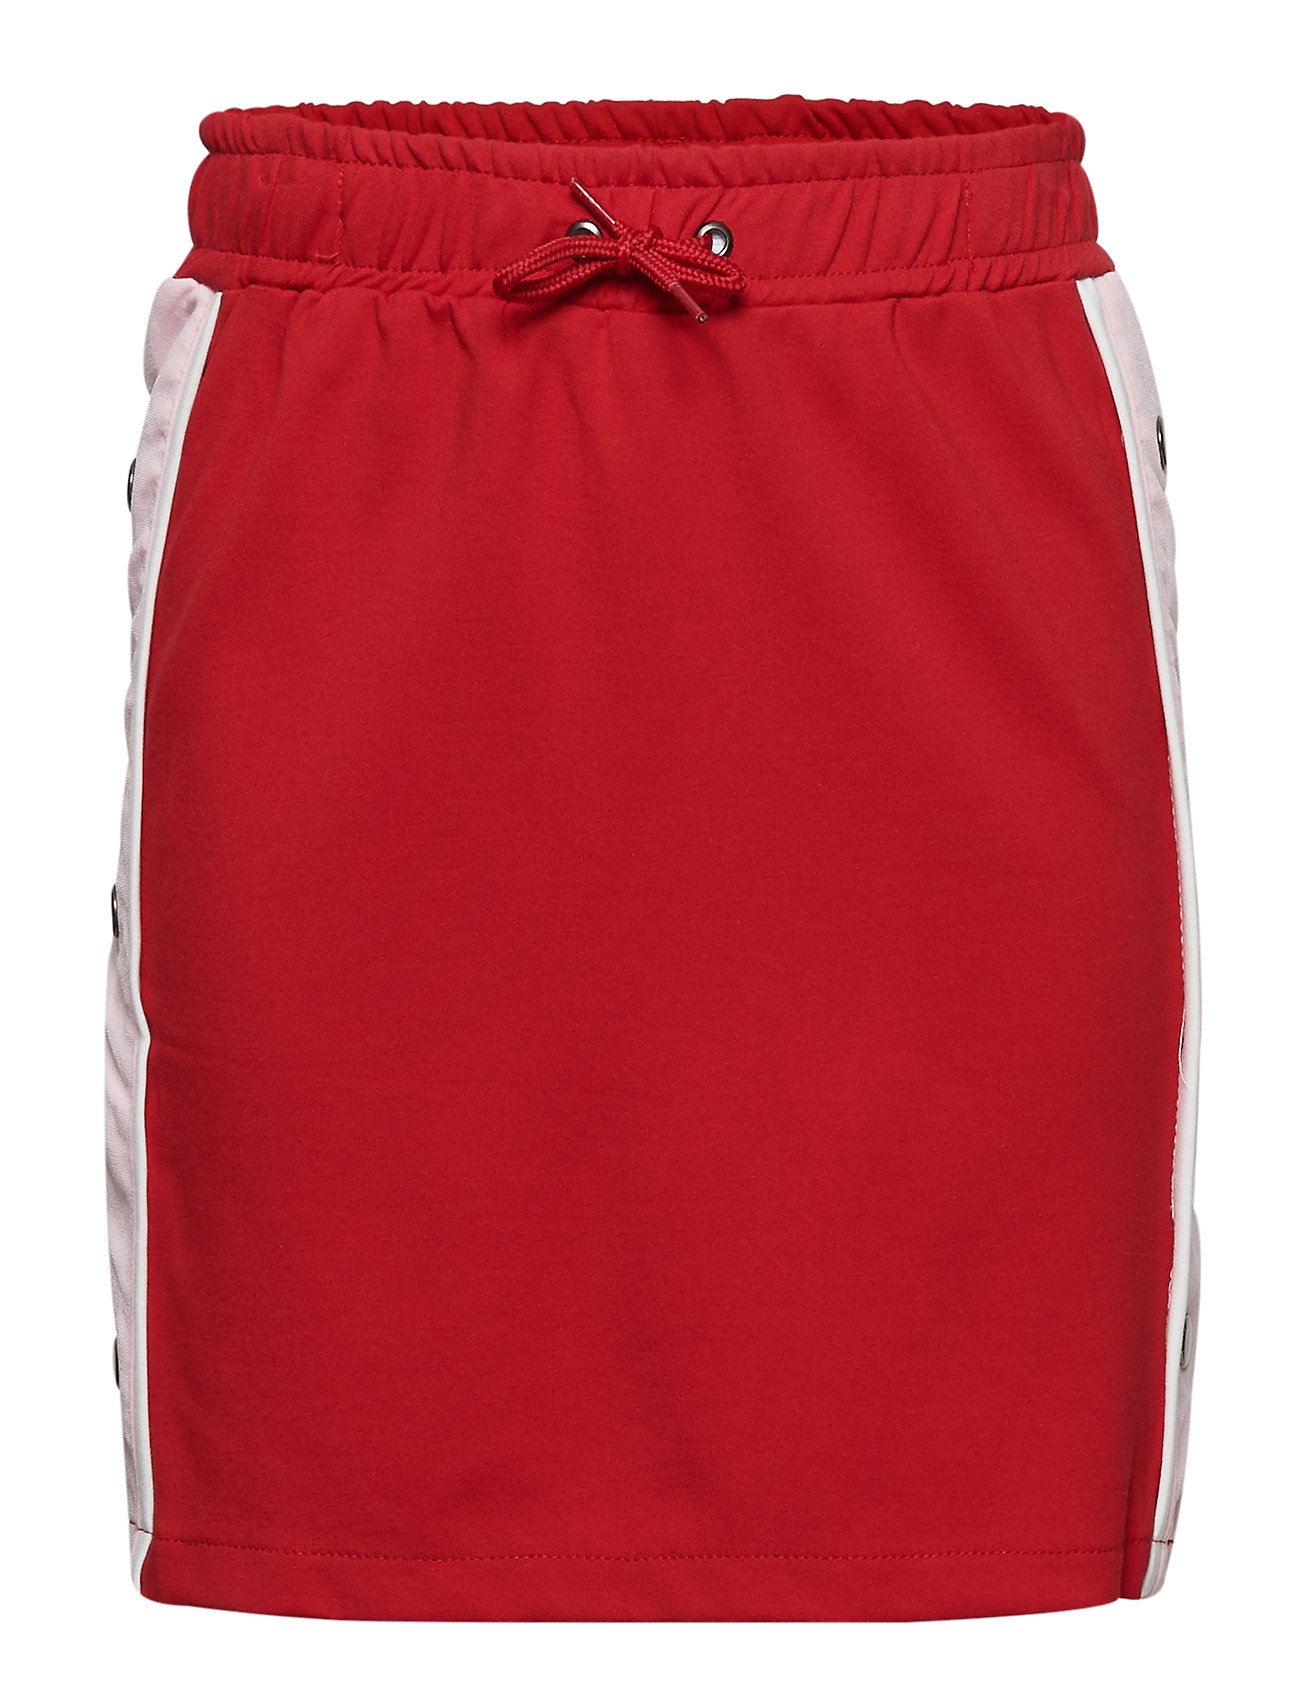 The New KELLY SKIRT - TOMATO